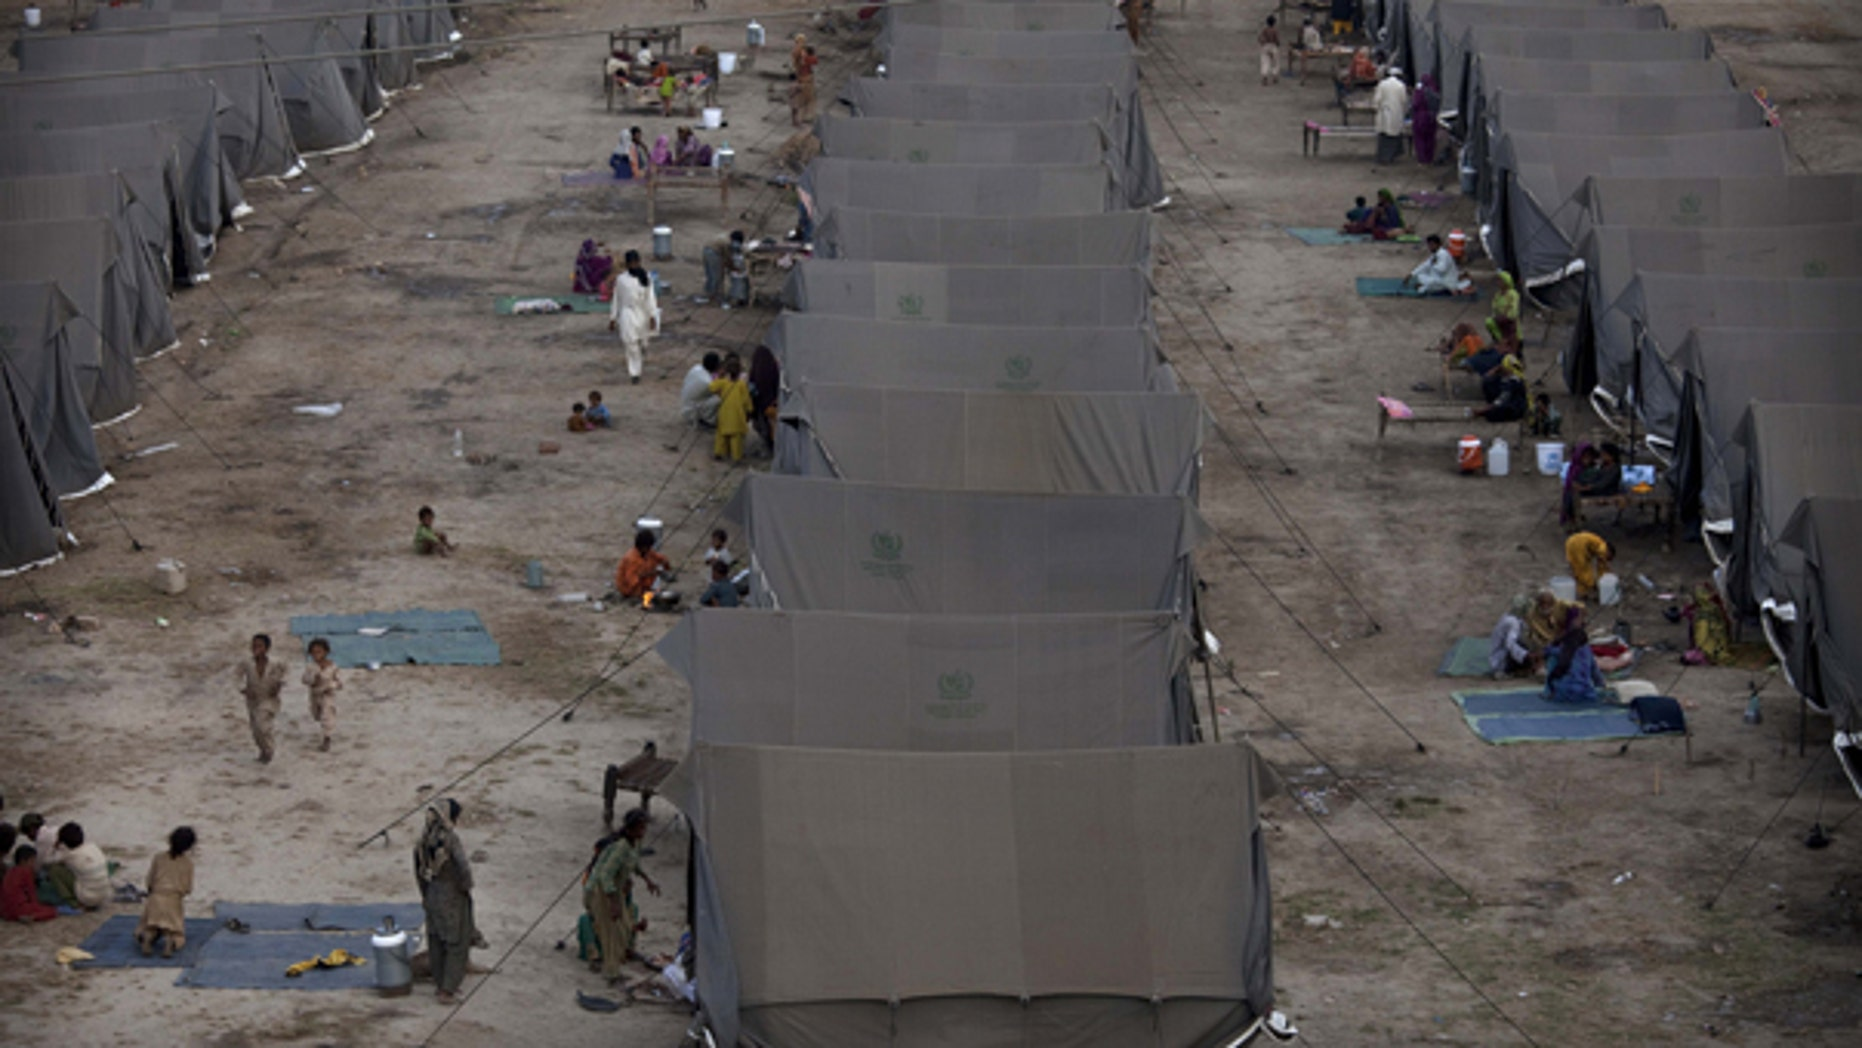 Aug. 26: Pakistanis displaced by flooding sit outside tents at a temporary camp operated by the Army in southern Pakistan.